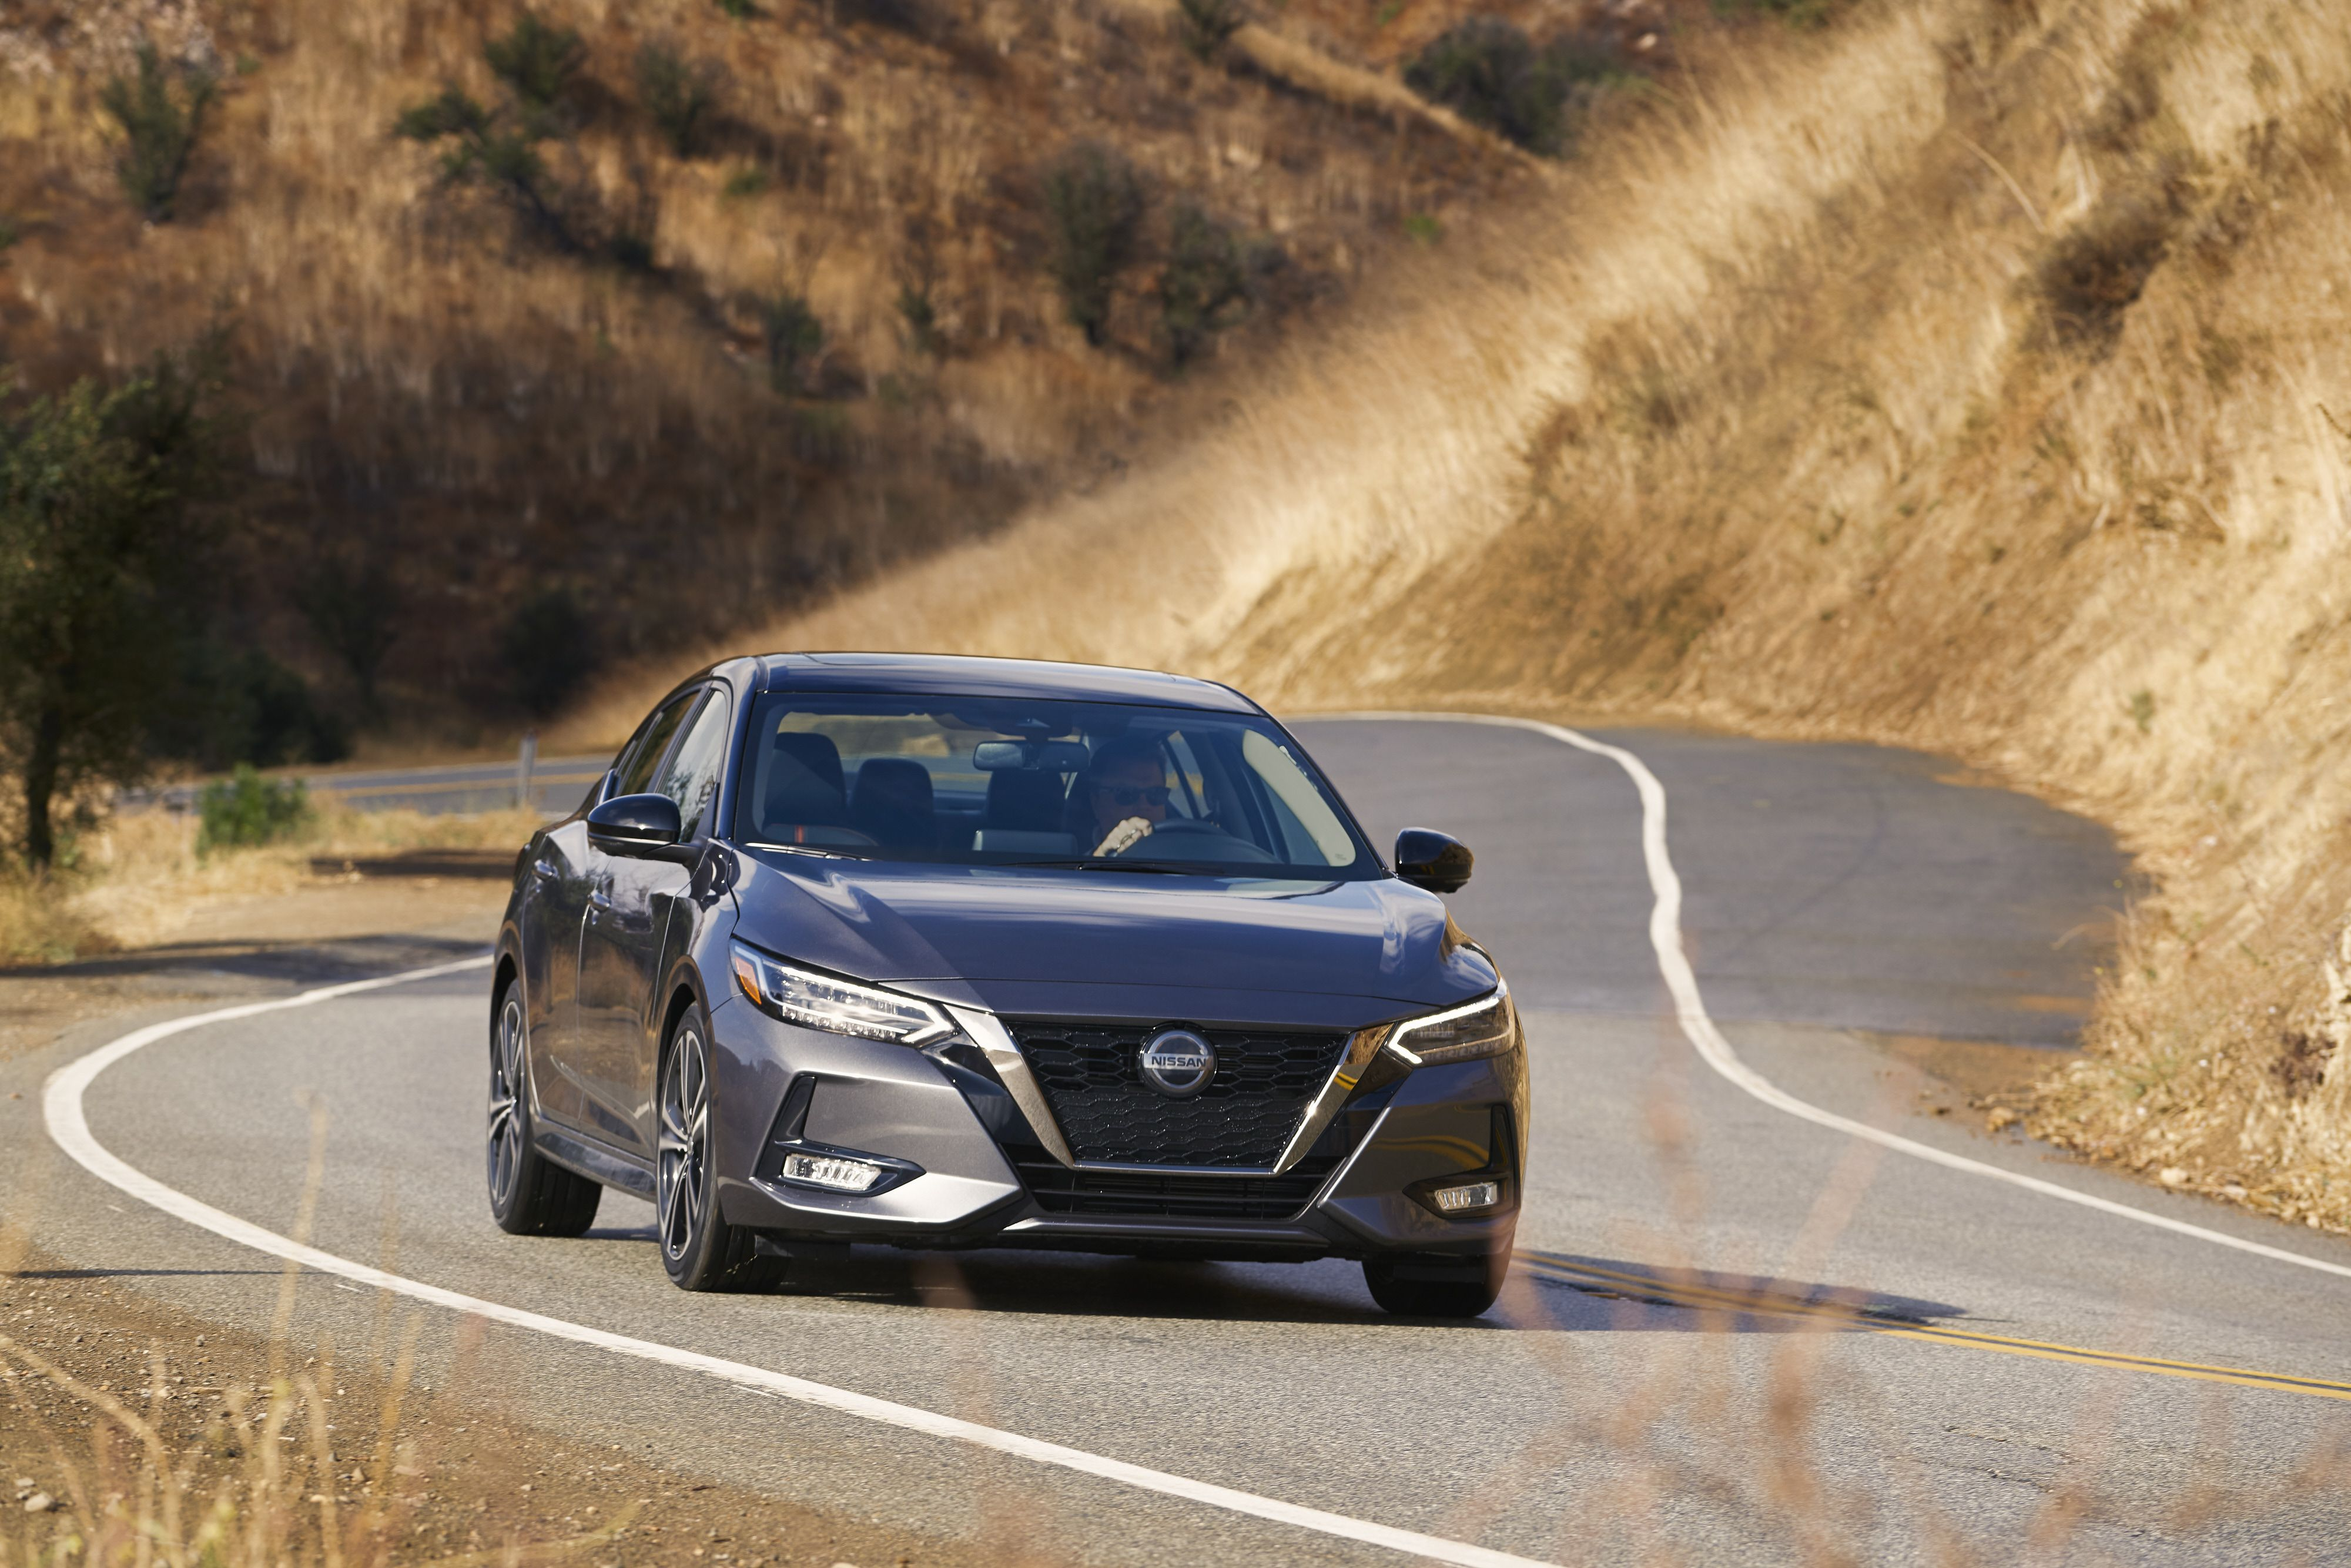 2021 Nissan Sentra Review Pricing And Specs The nissan sentra is a car produced by nissan since 1982. 2021 nissan sentra review pricing and specs